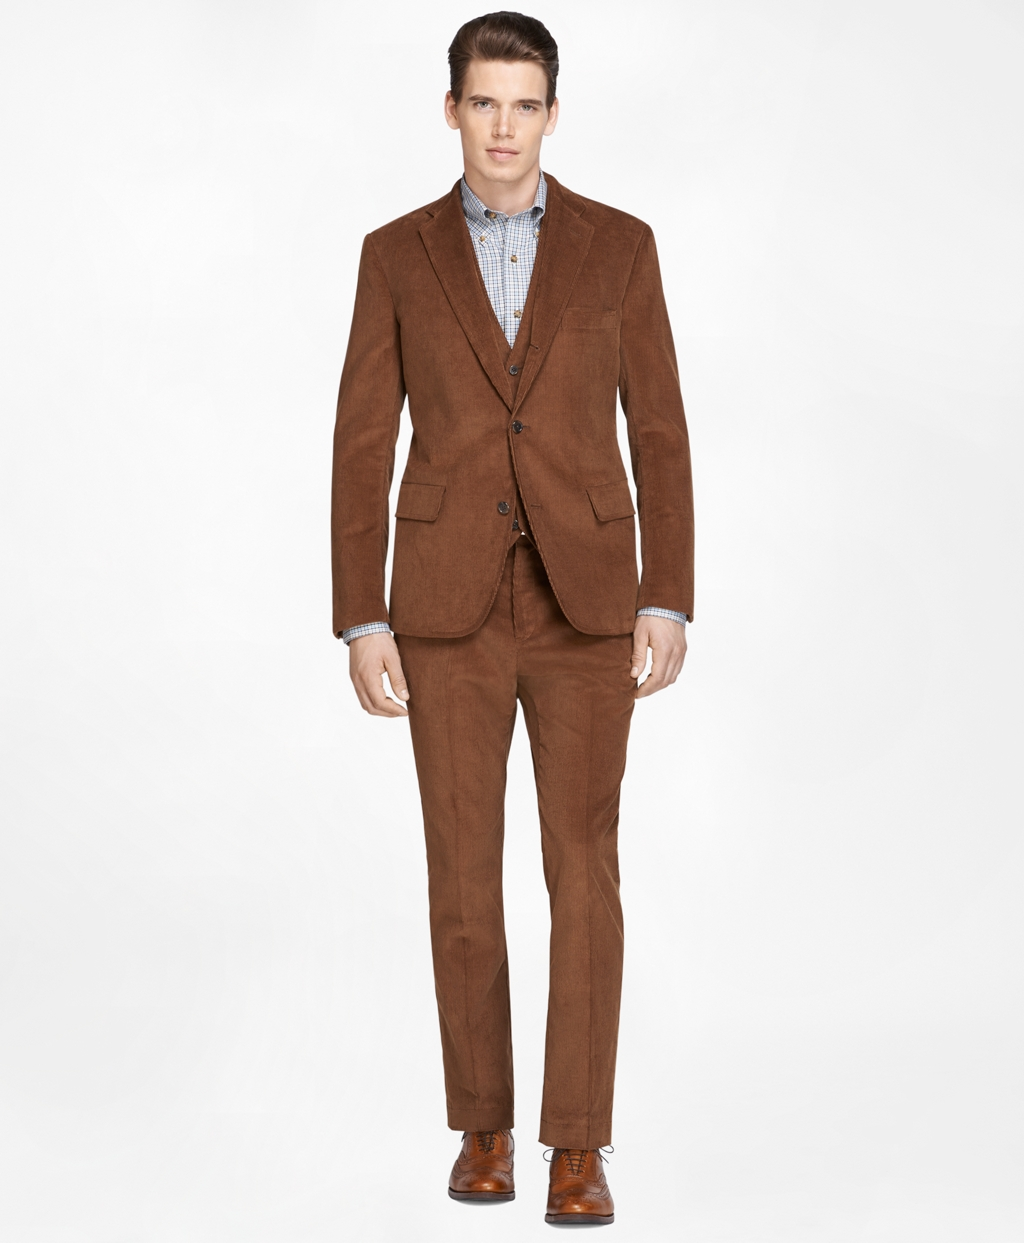 Men's Own Make Light Brown Three-Piece Corduroy Suit | Brooks Brothers